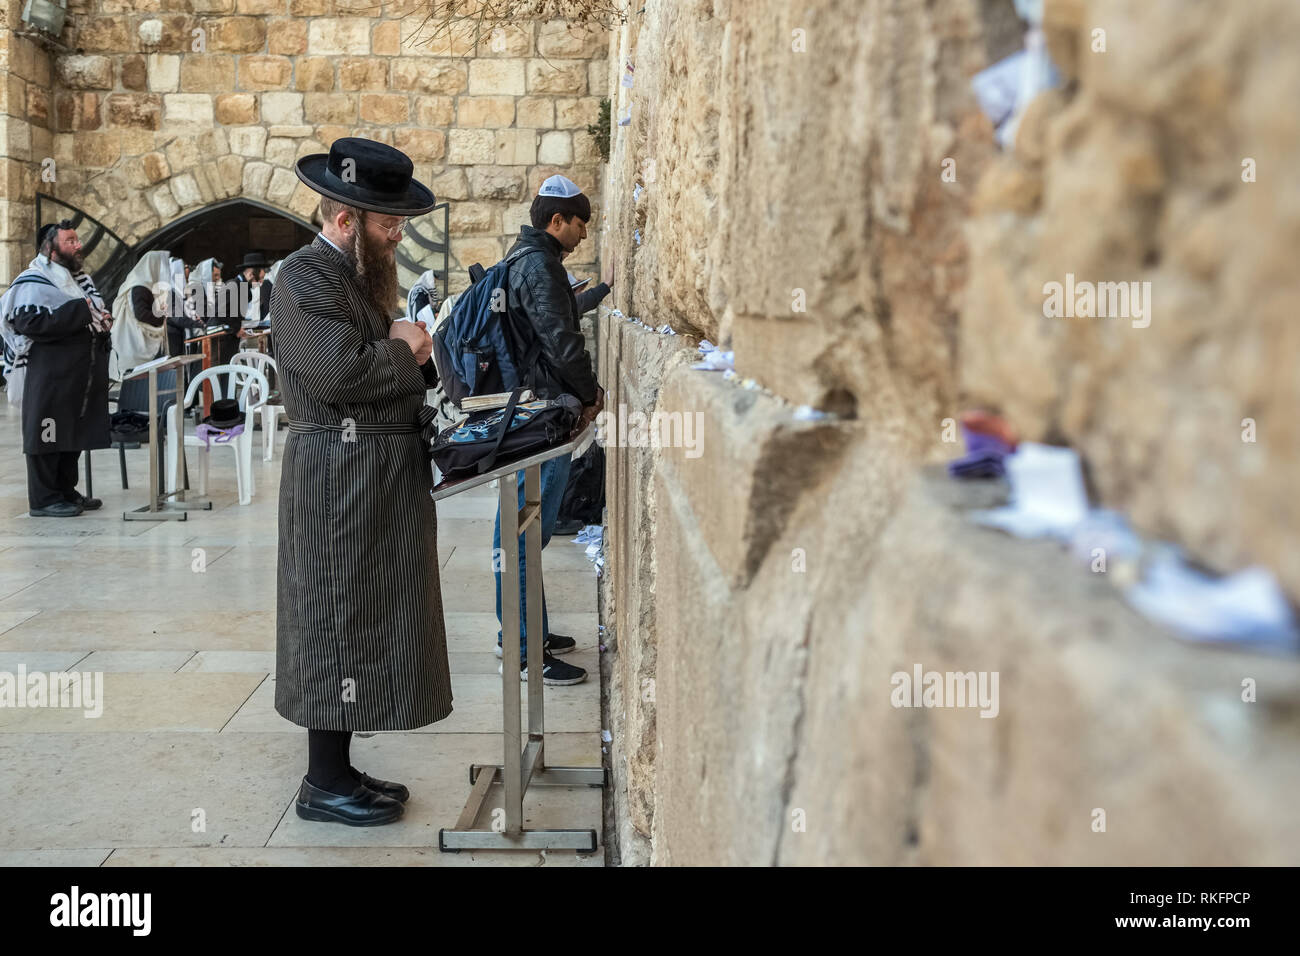 Jerusalem, Israel - November 20, 2018: Religious orthodox jew praying at the Western wall in Jerusalem - Stock Image